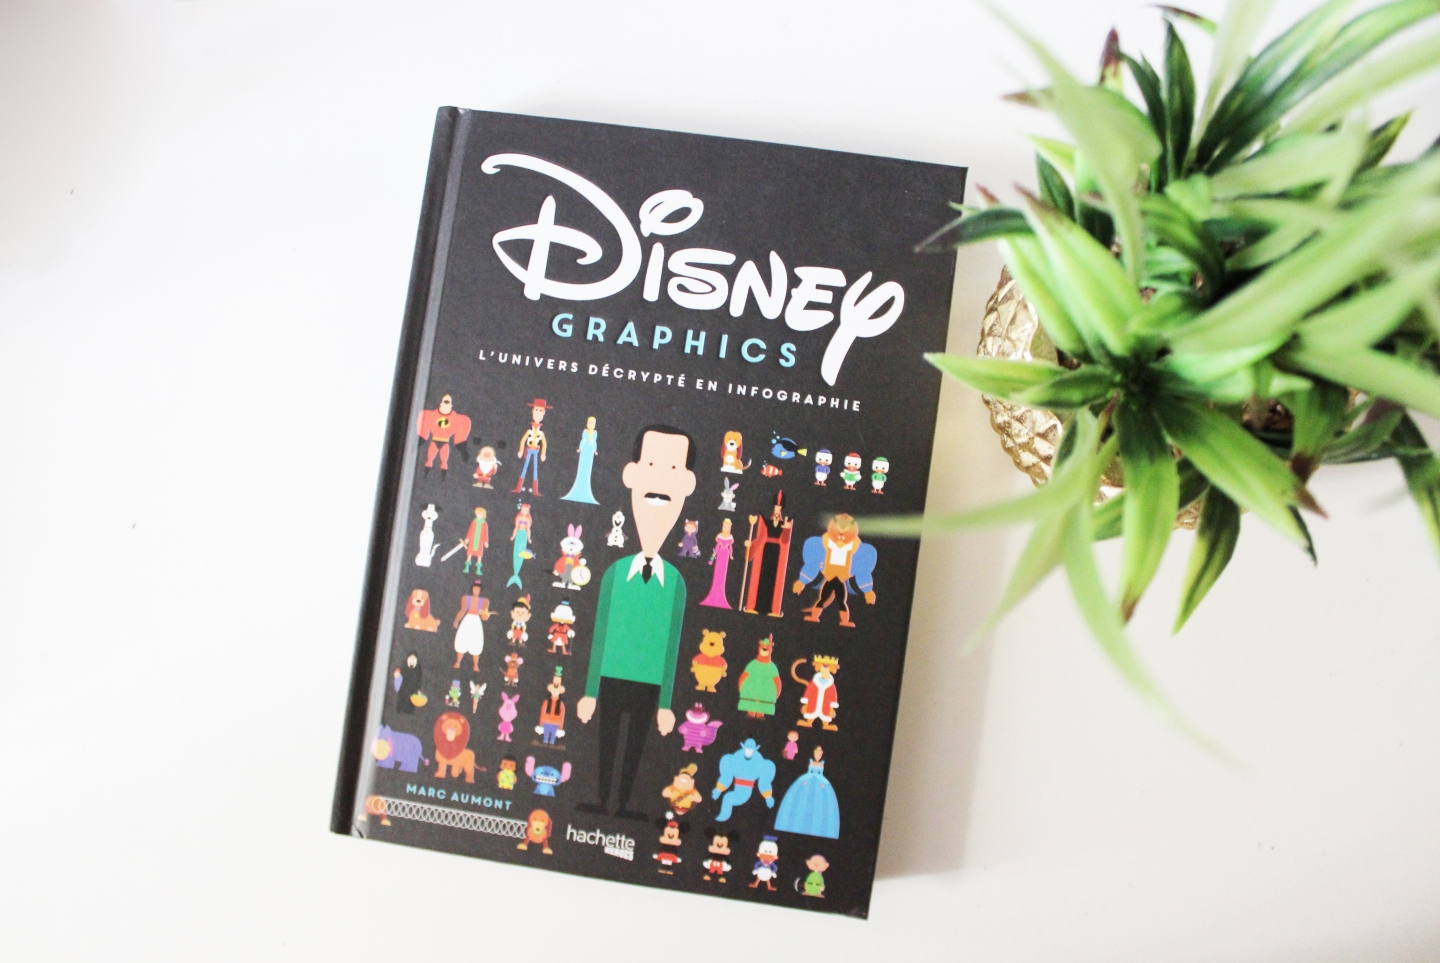 Disney-graphics-001